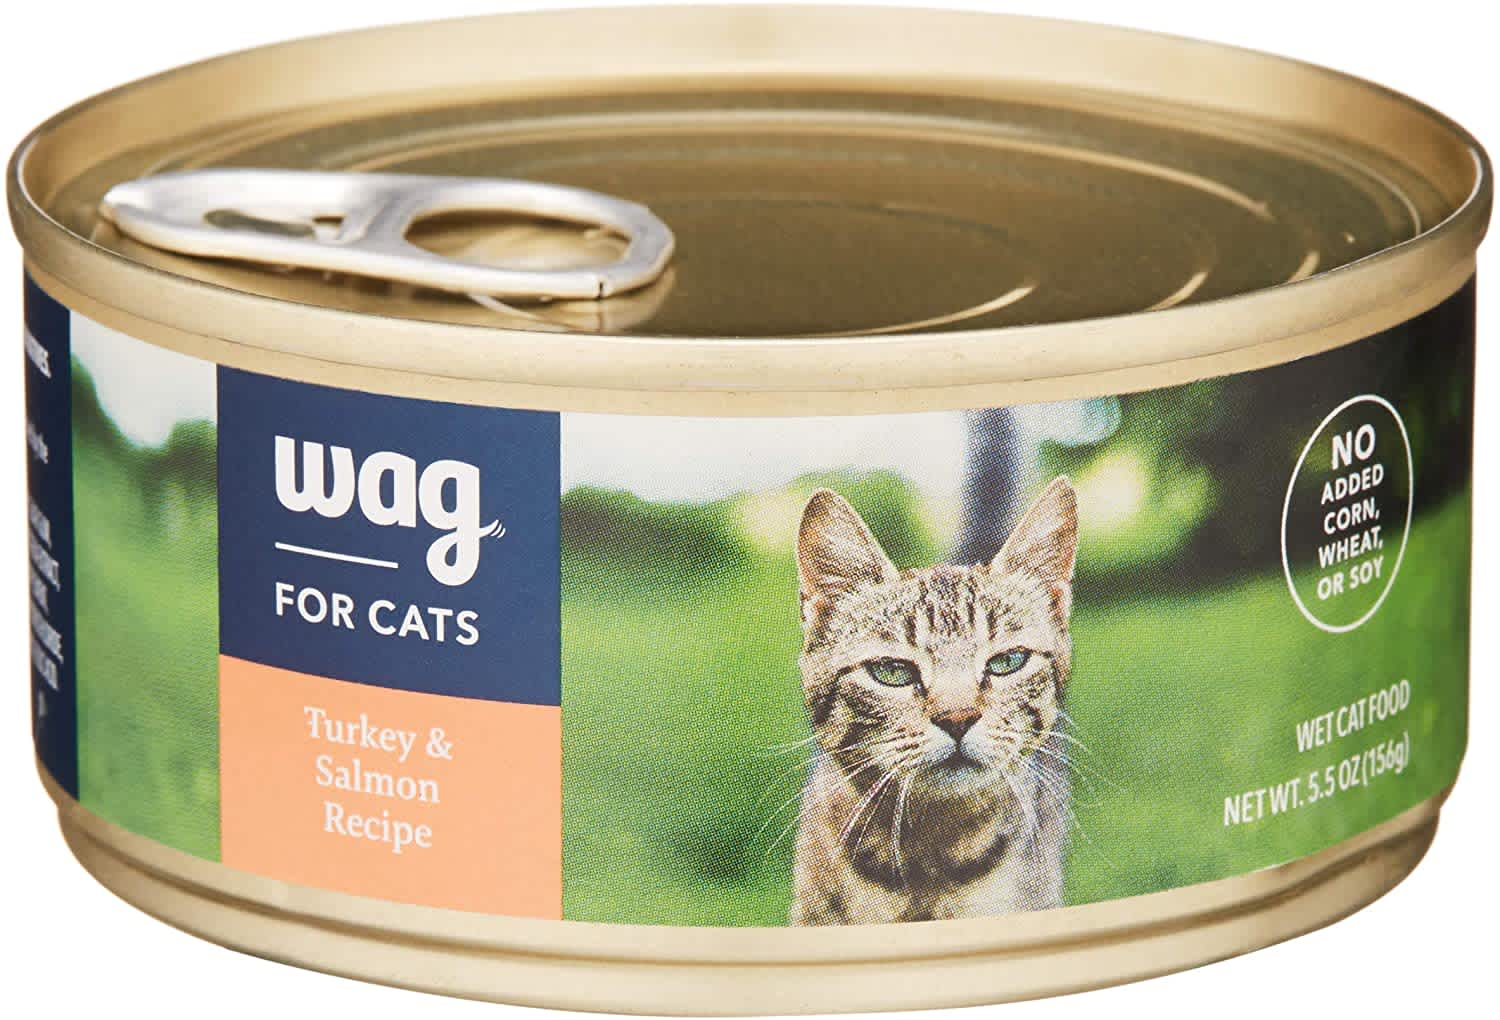 Wag Dog & Cat Food at Amazon